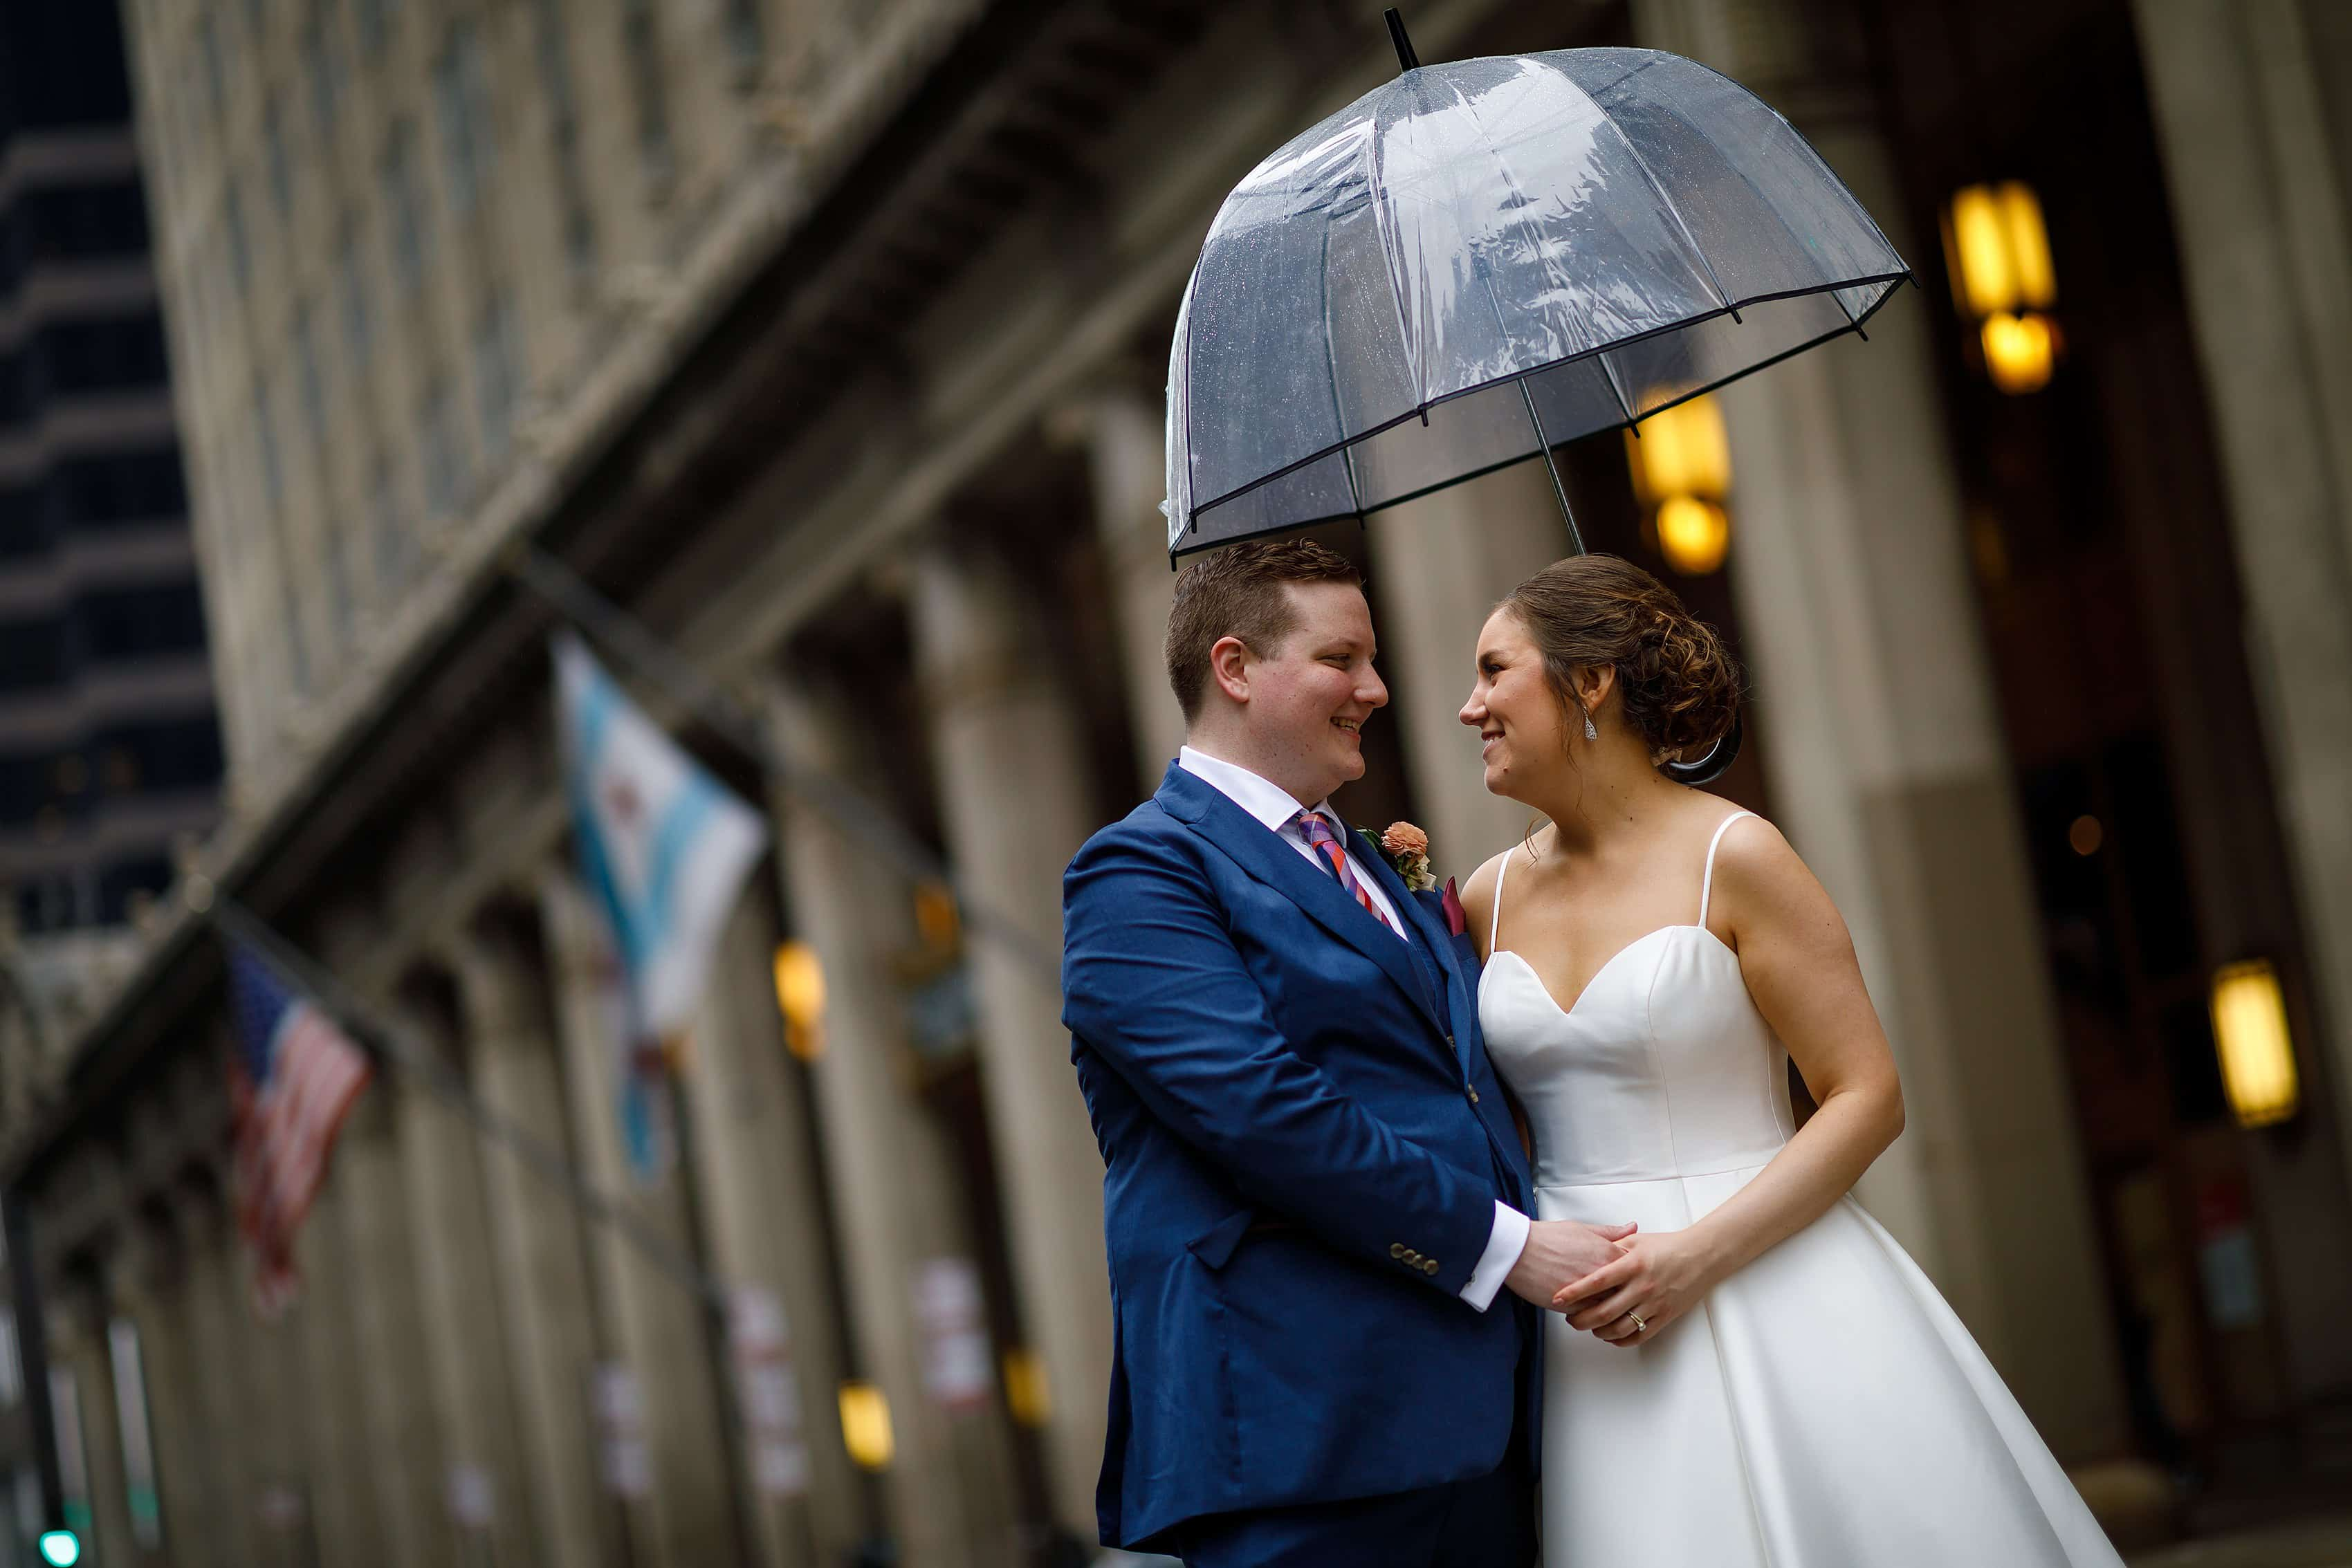 bride and groom under umbrella during wedding portrait at Lyric Opera House in Chicago